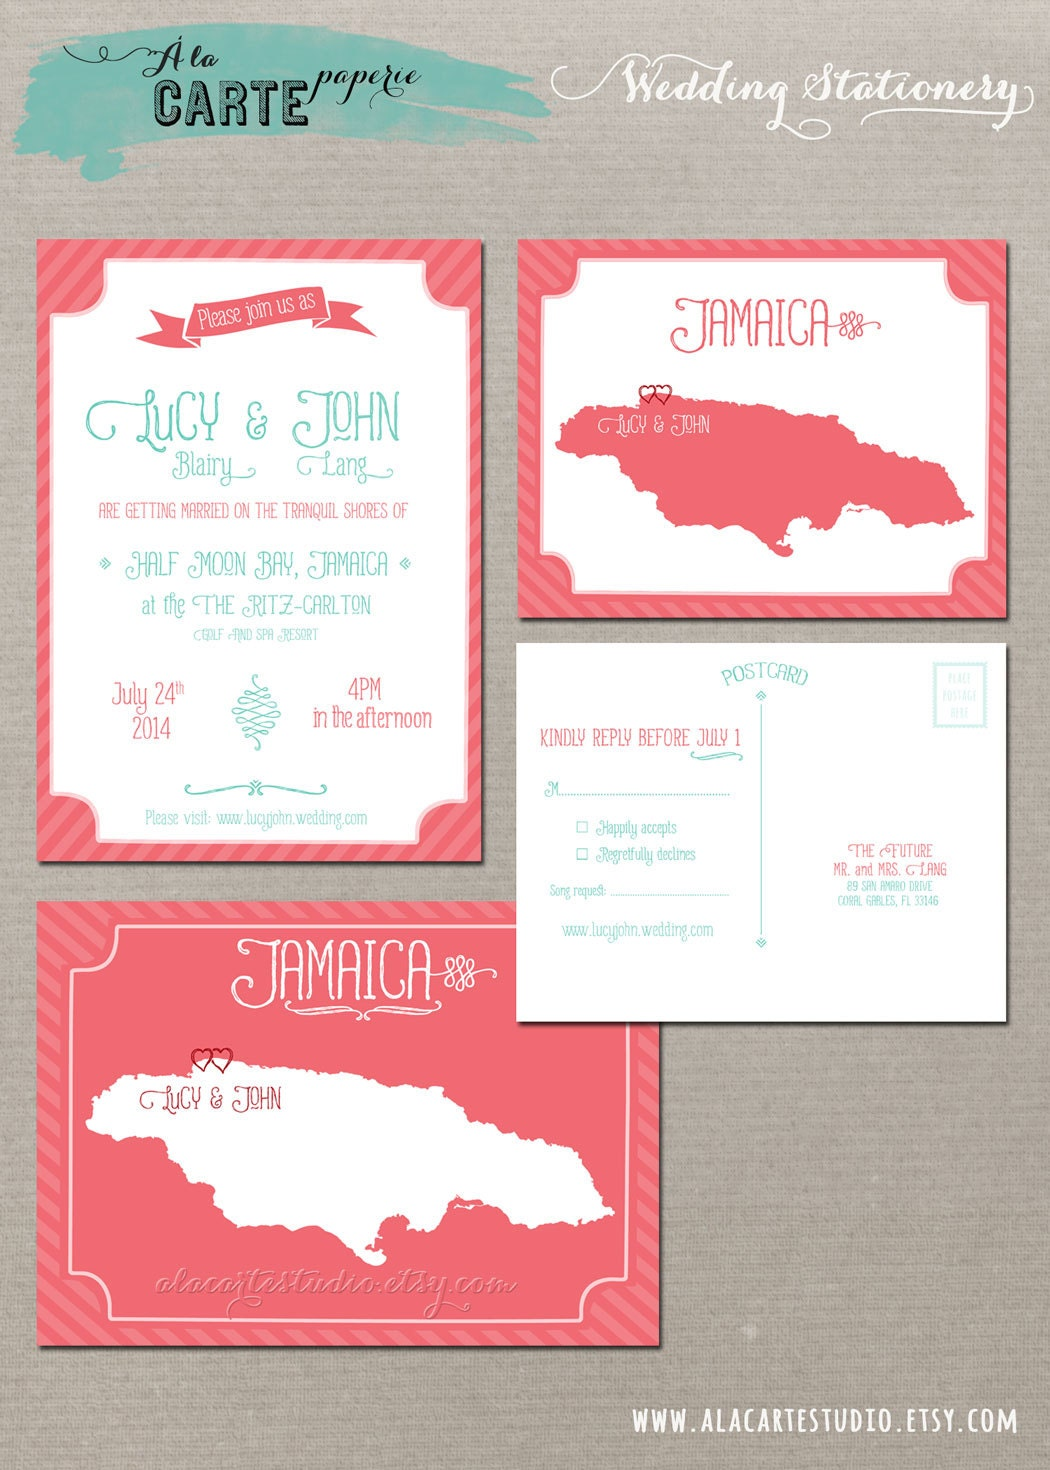 Coral reef beach destination wedding invitation rsvp cards for Destination wedding invitation rsvp etiquette